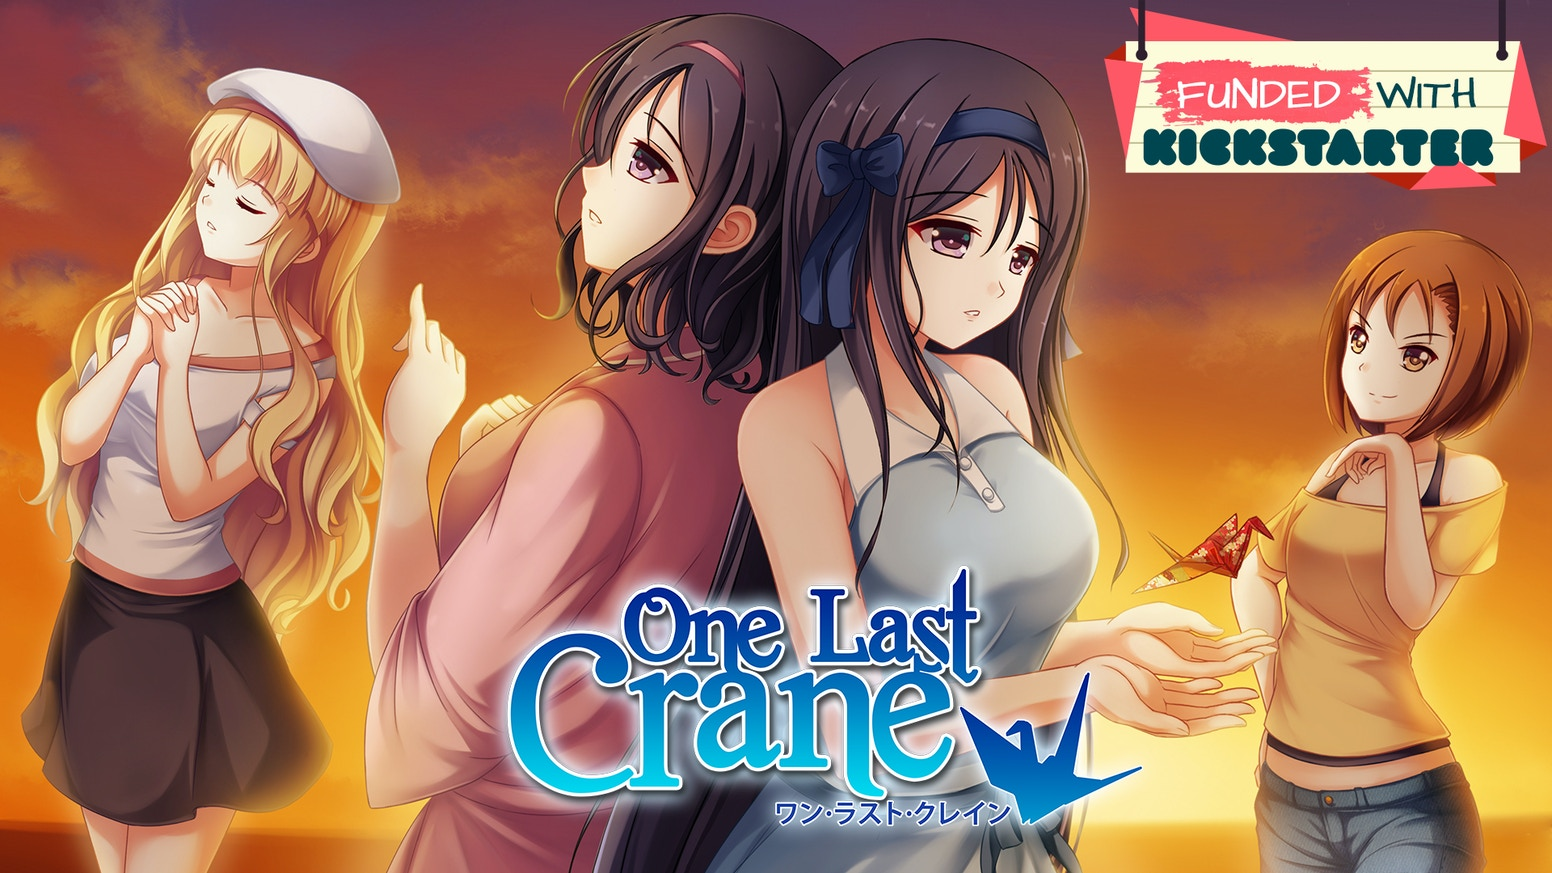 One Last Crane - Visual Novel by DigitalEZ — Kickstarter